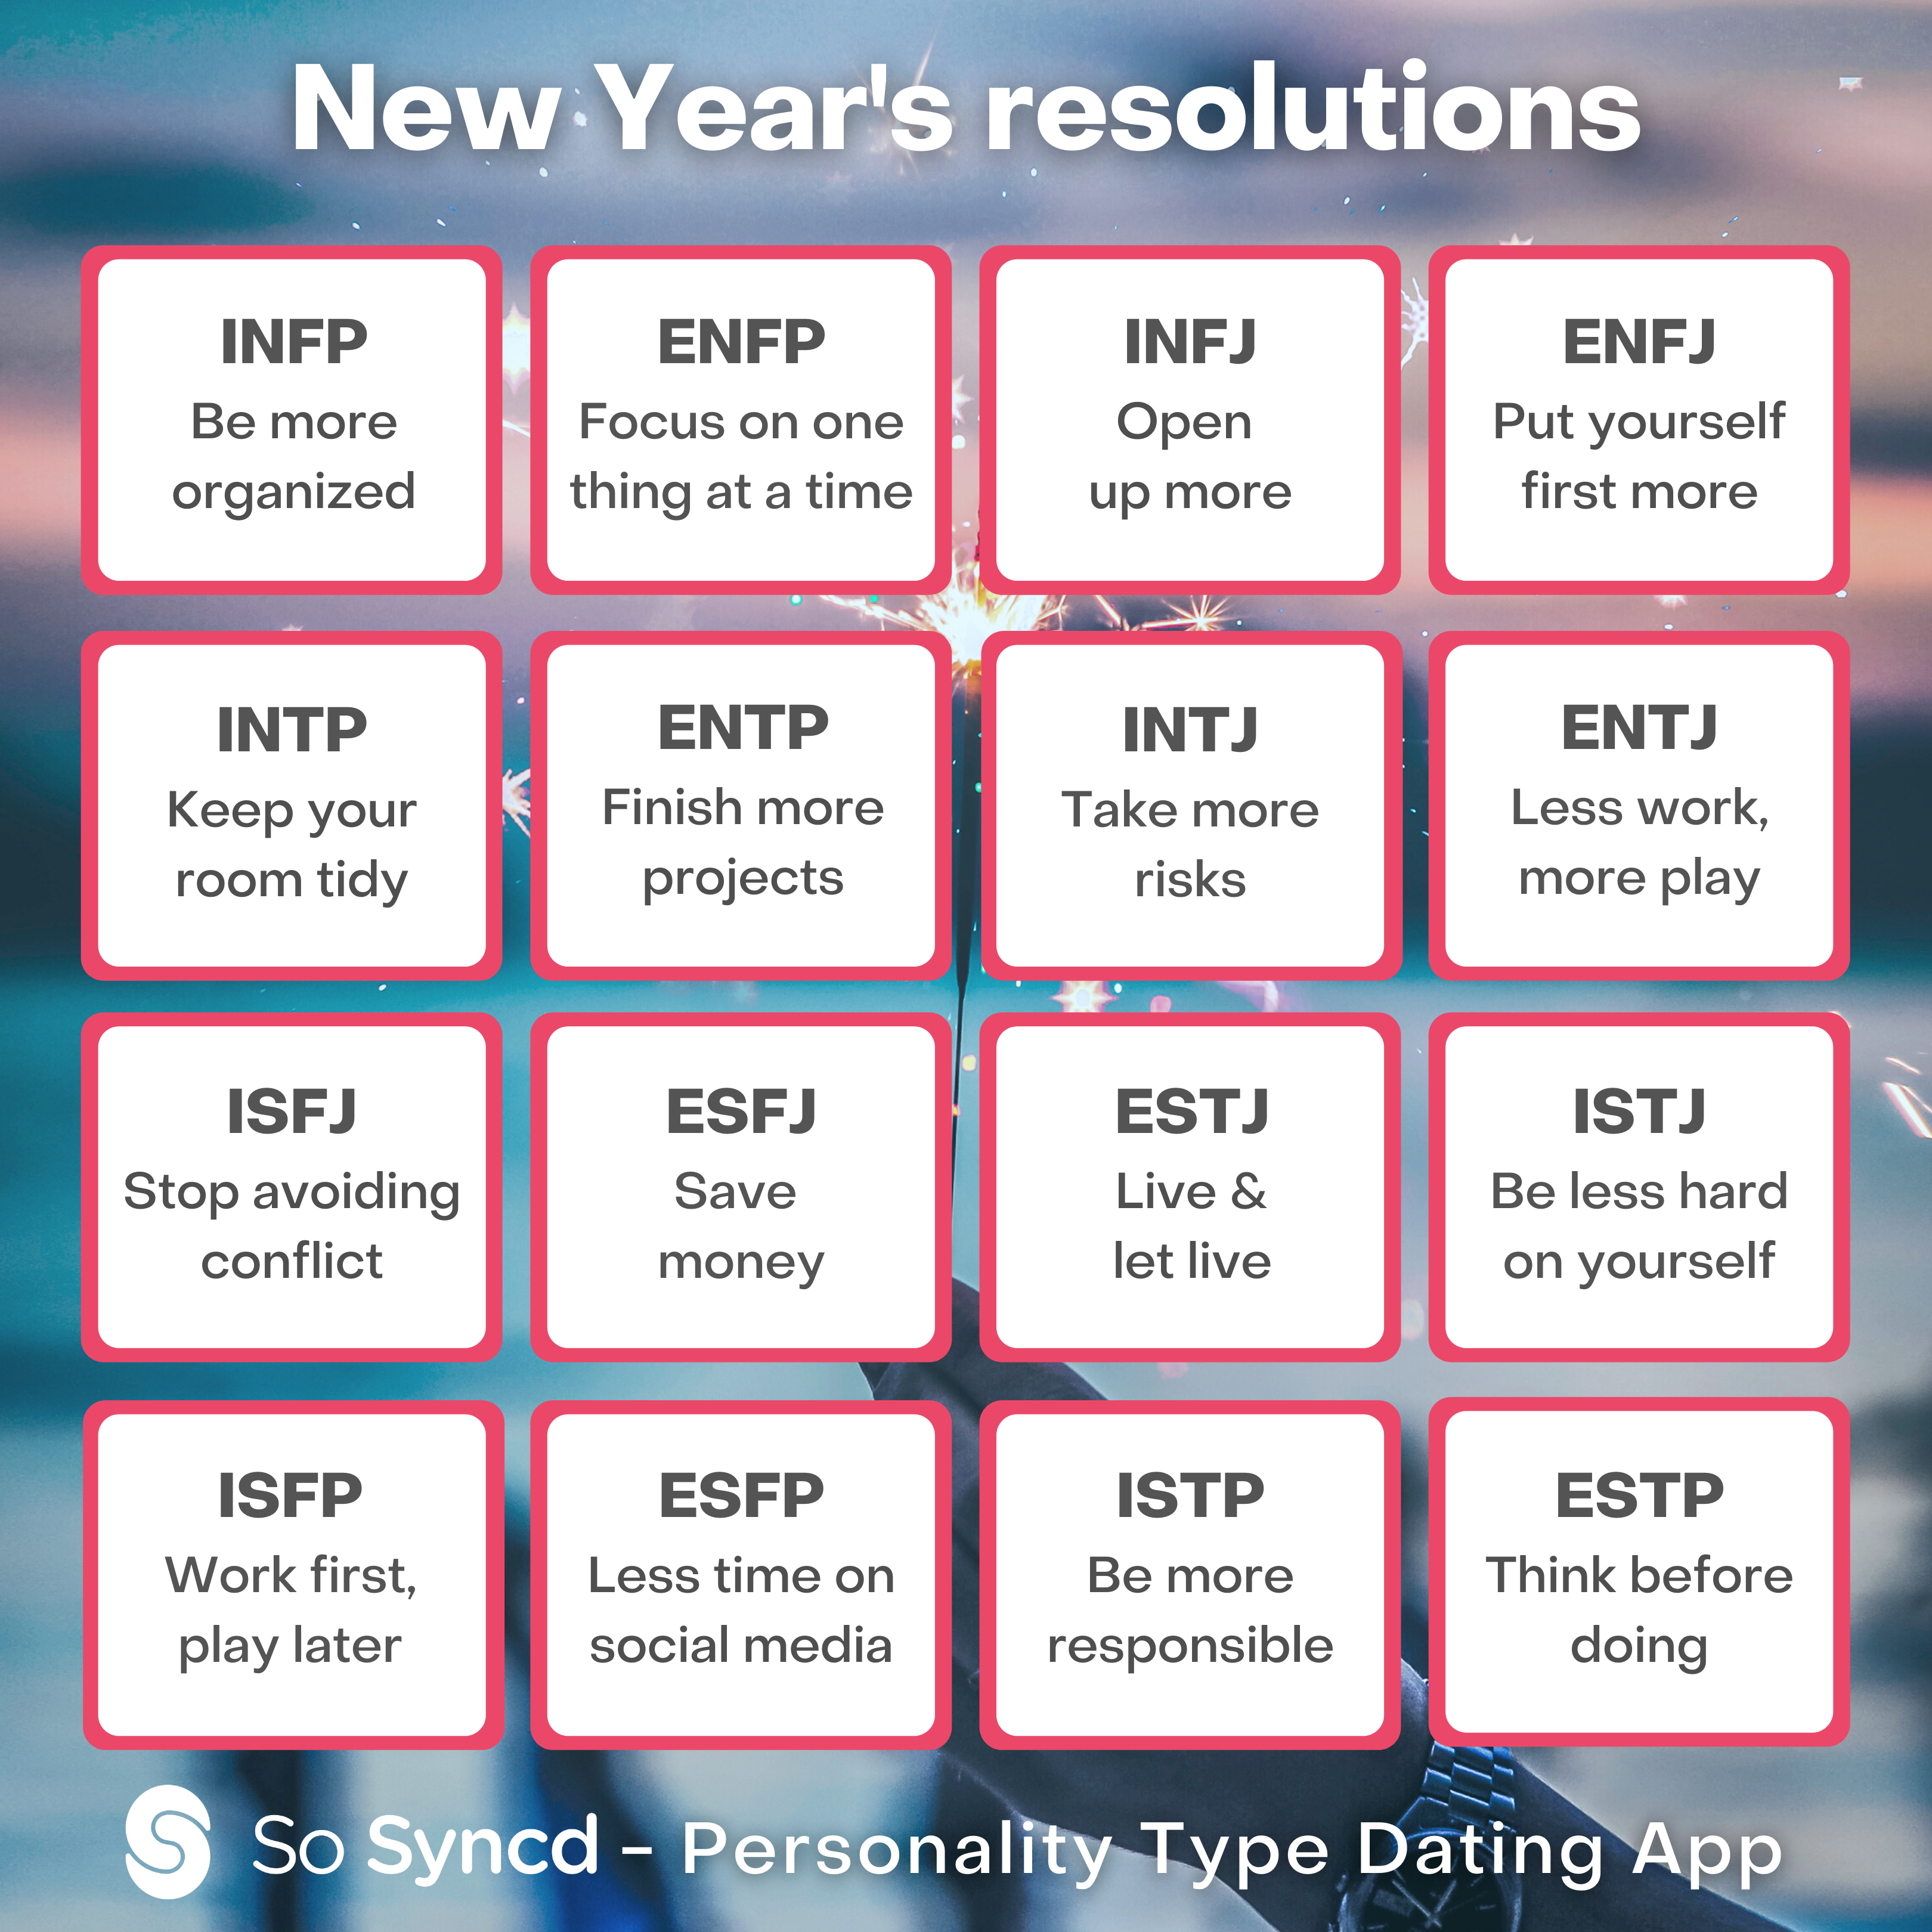 New Year's resolutions of each MBTI type